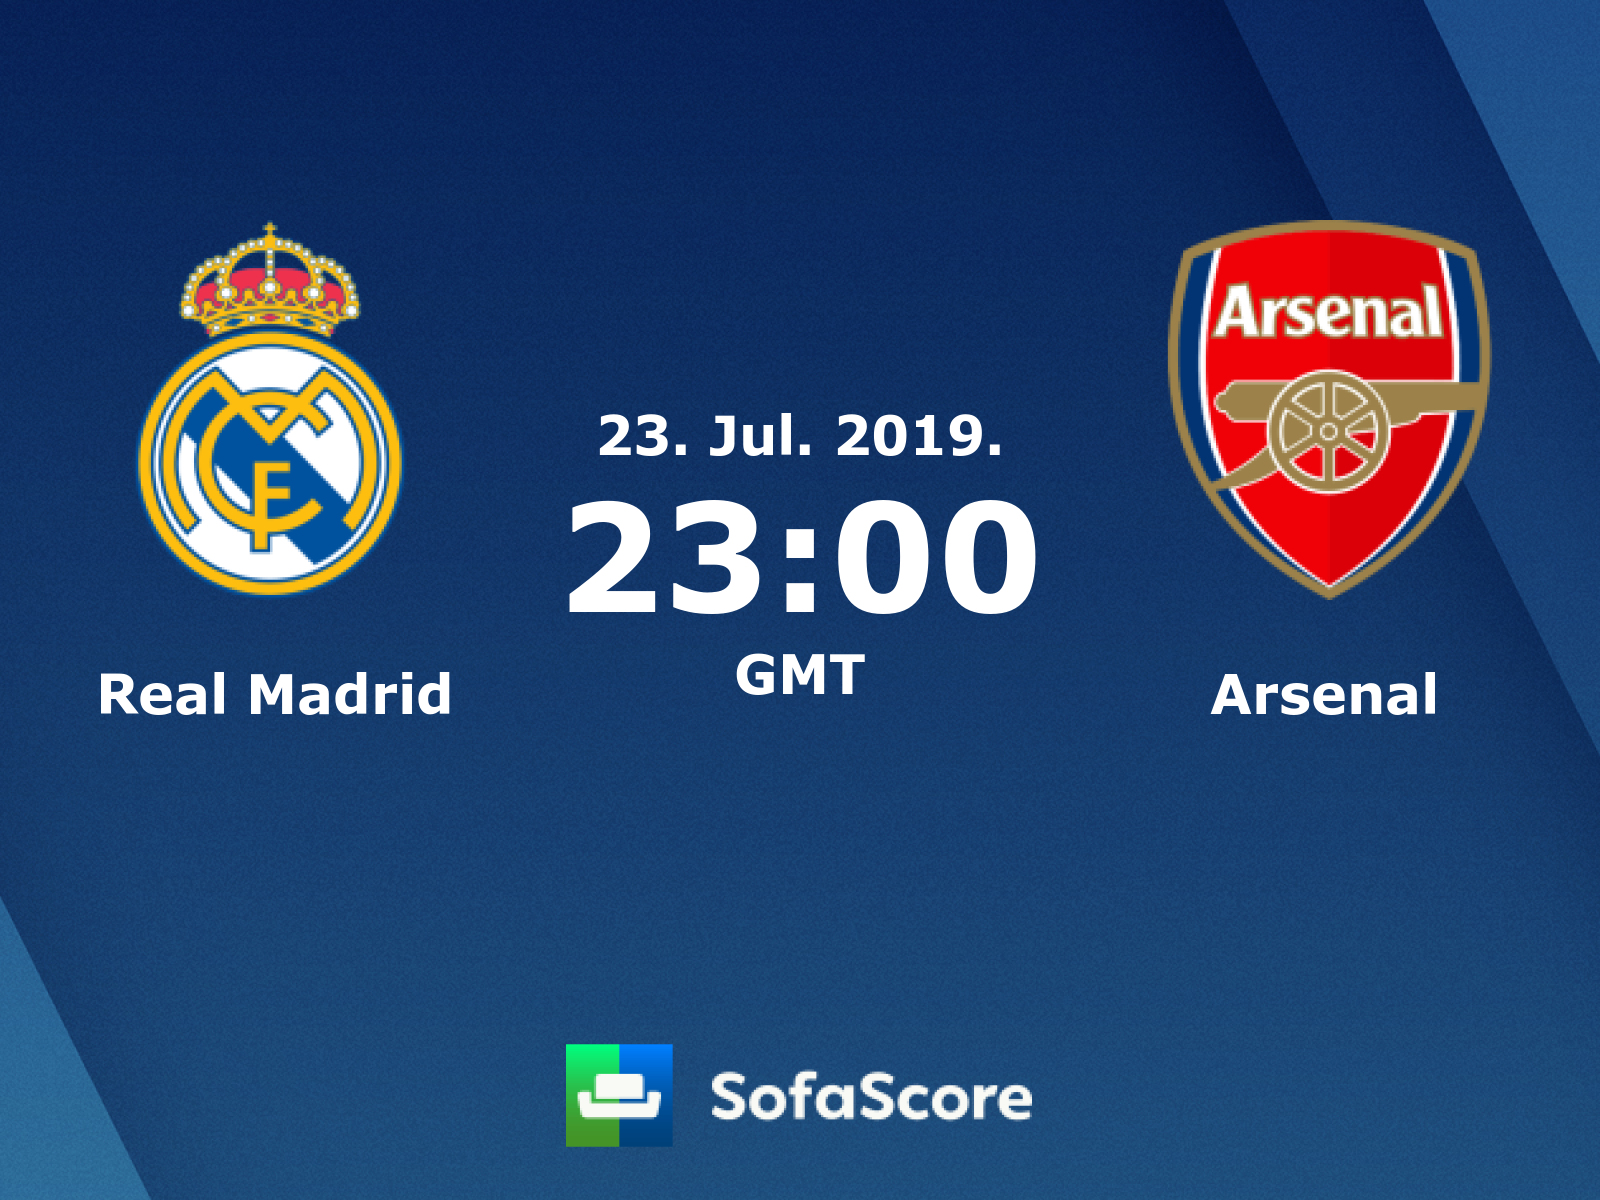 Real Madrid Arsenal live score, video stream and H2H results - SofaScore